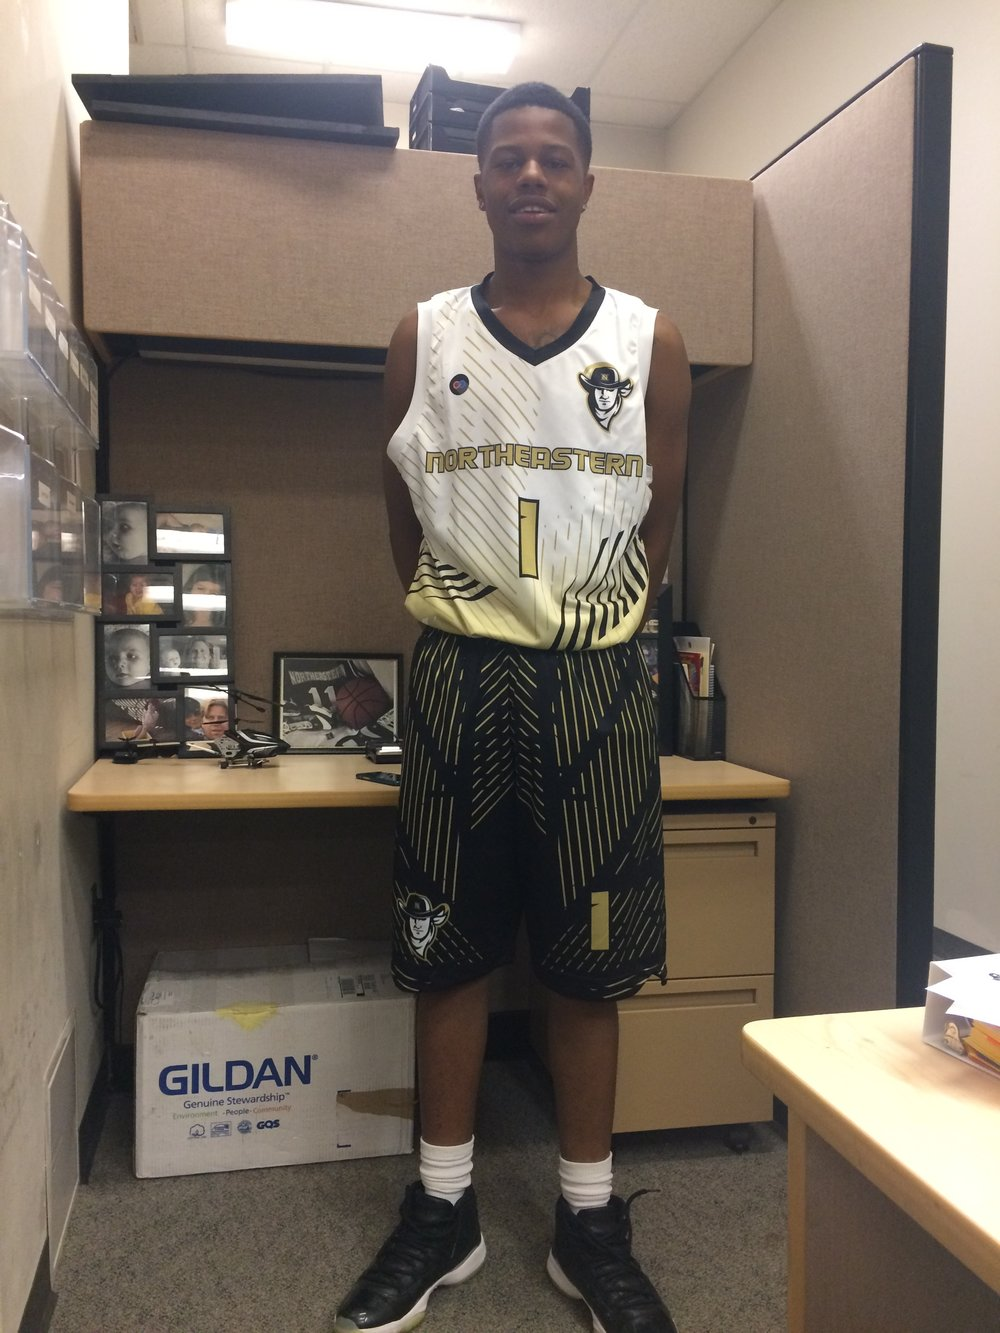 Black Vegas Gold and White Baseball Uniforms, Jersey and Shorts